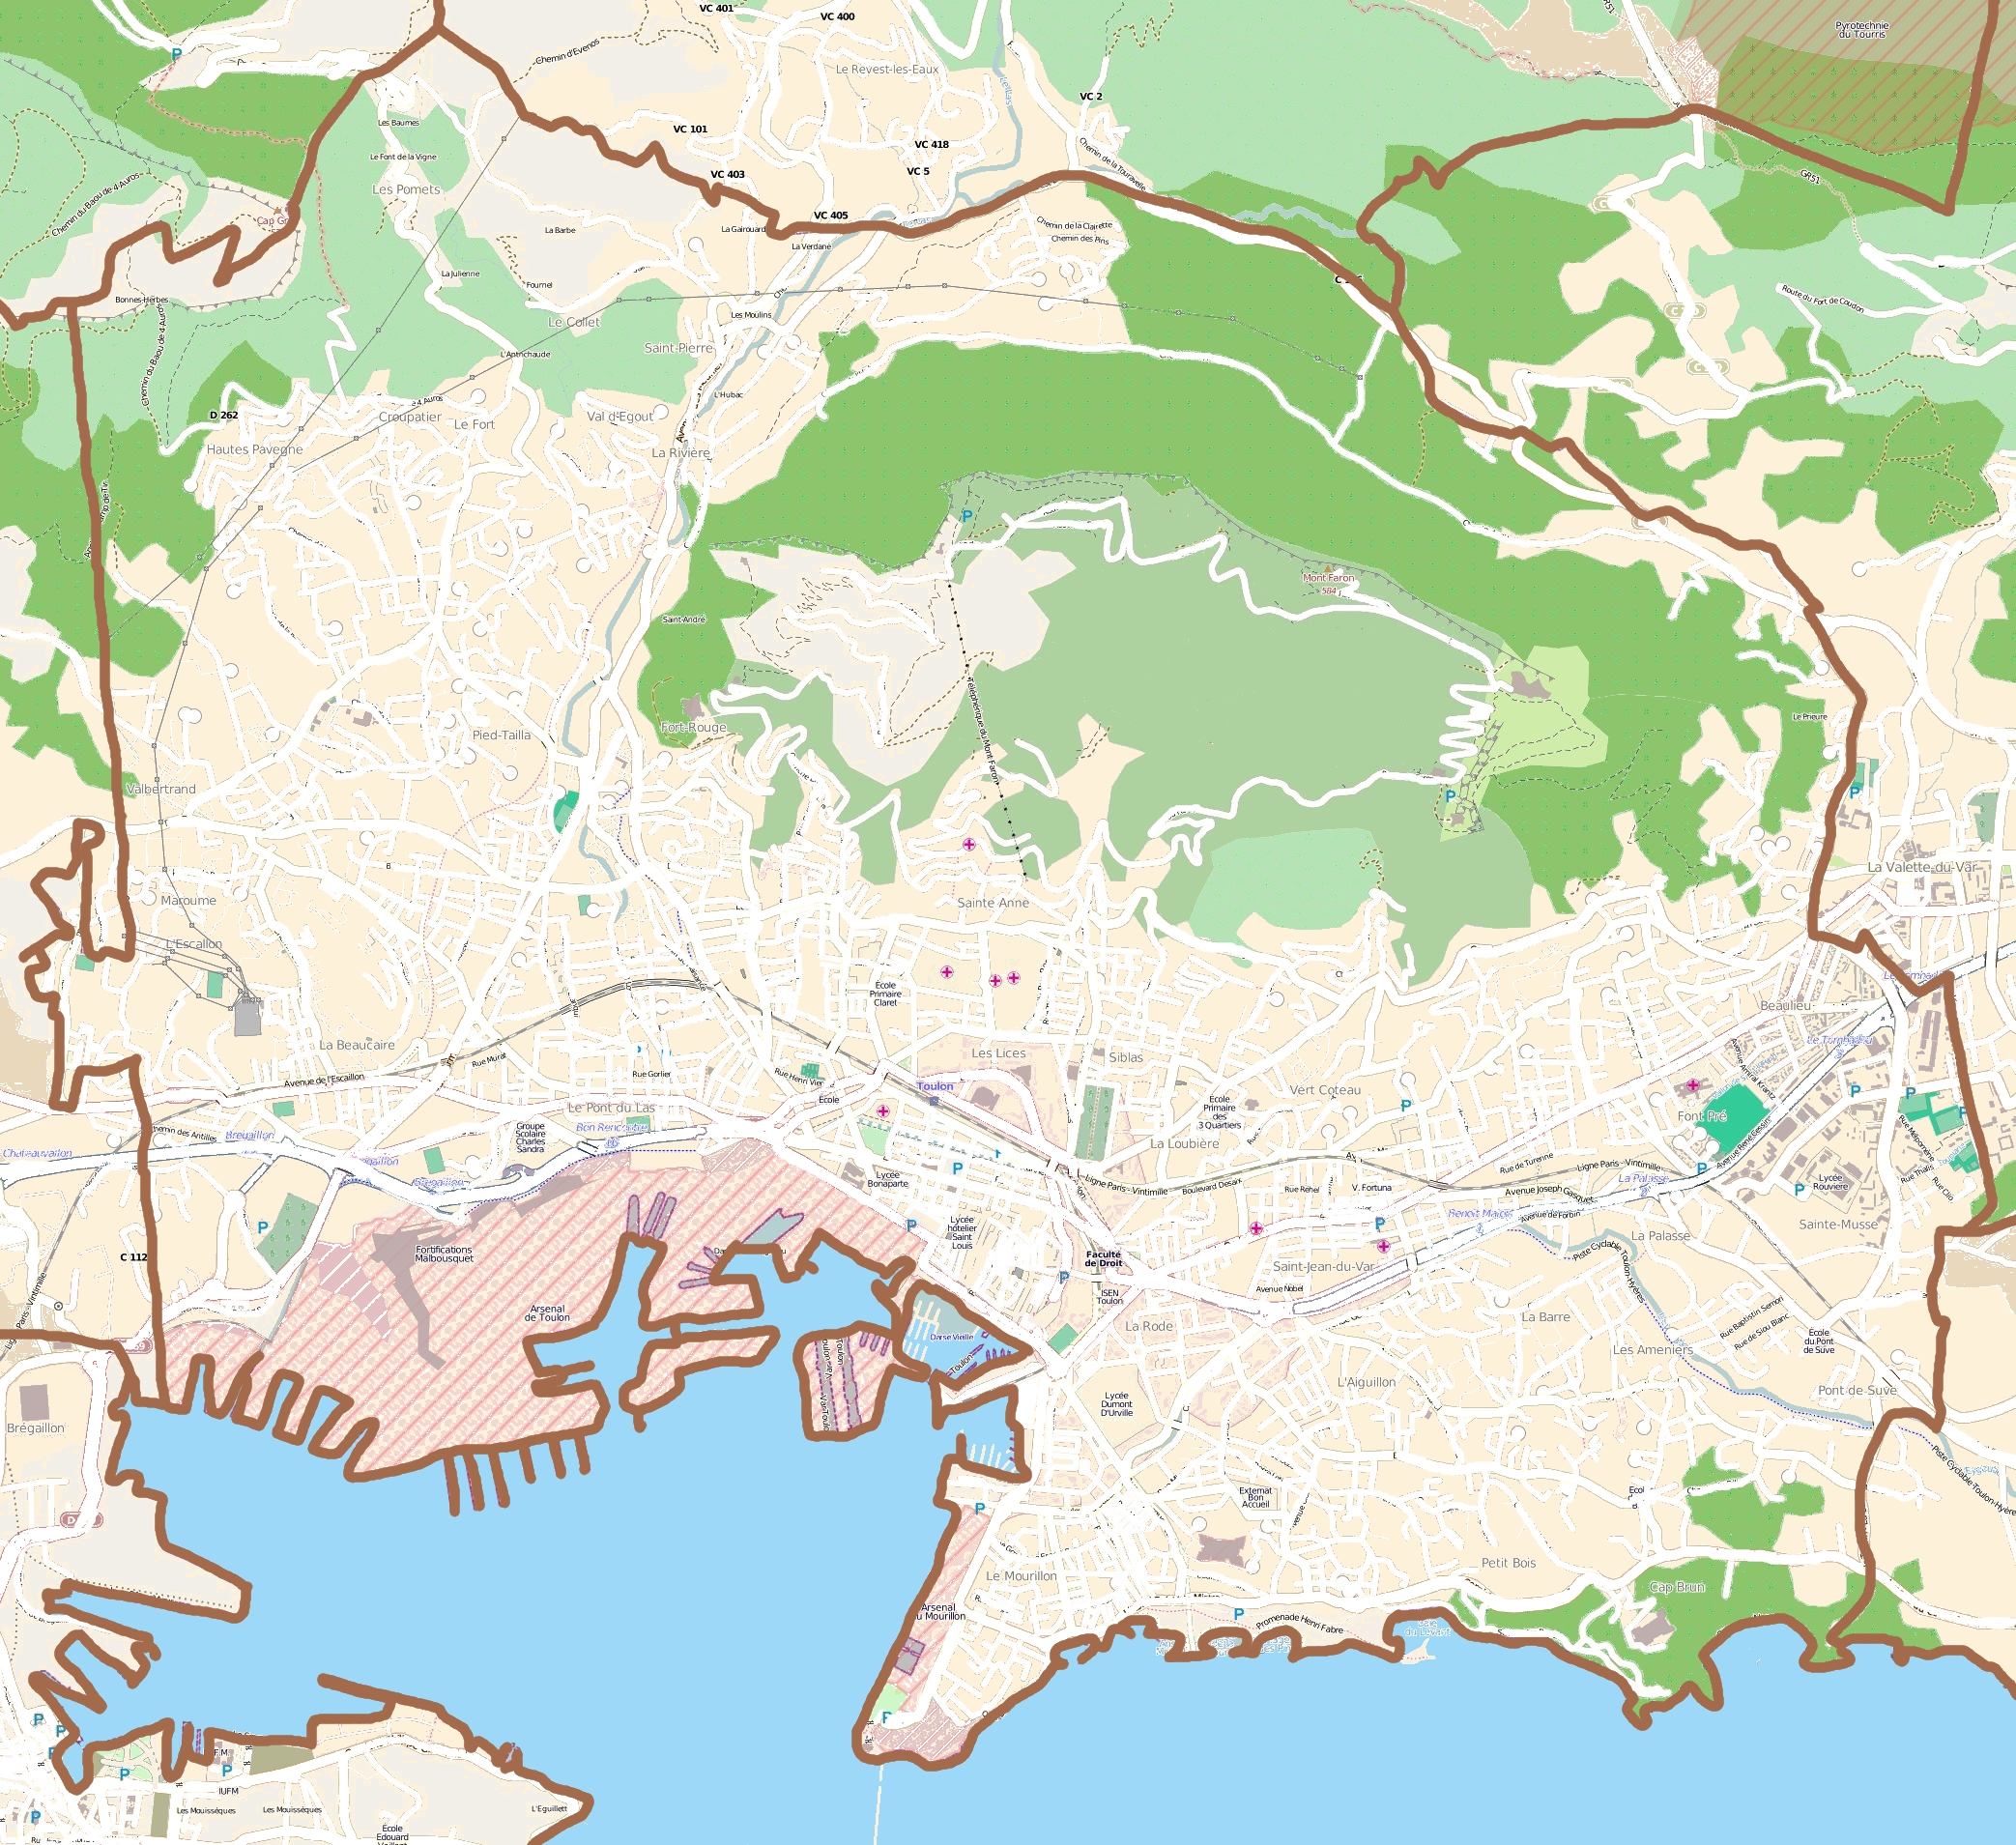 File:Map Toulon.jpg - Wikimedia Commons